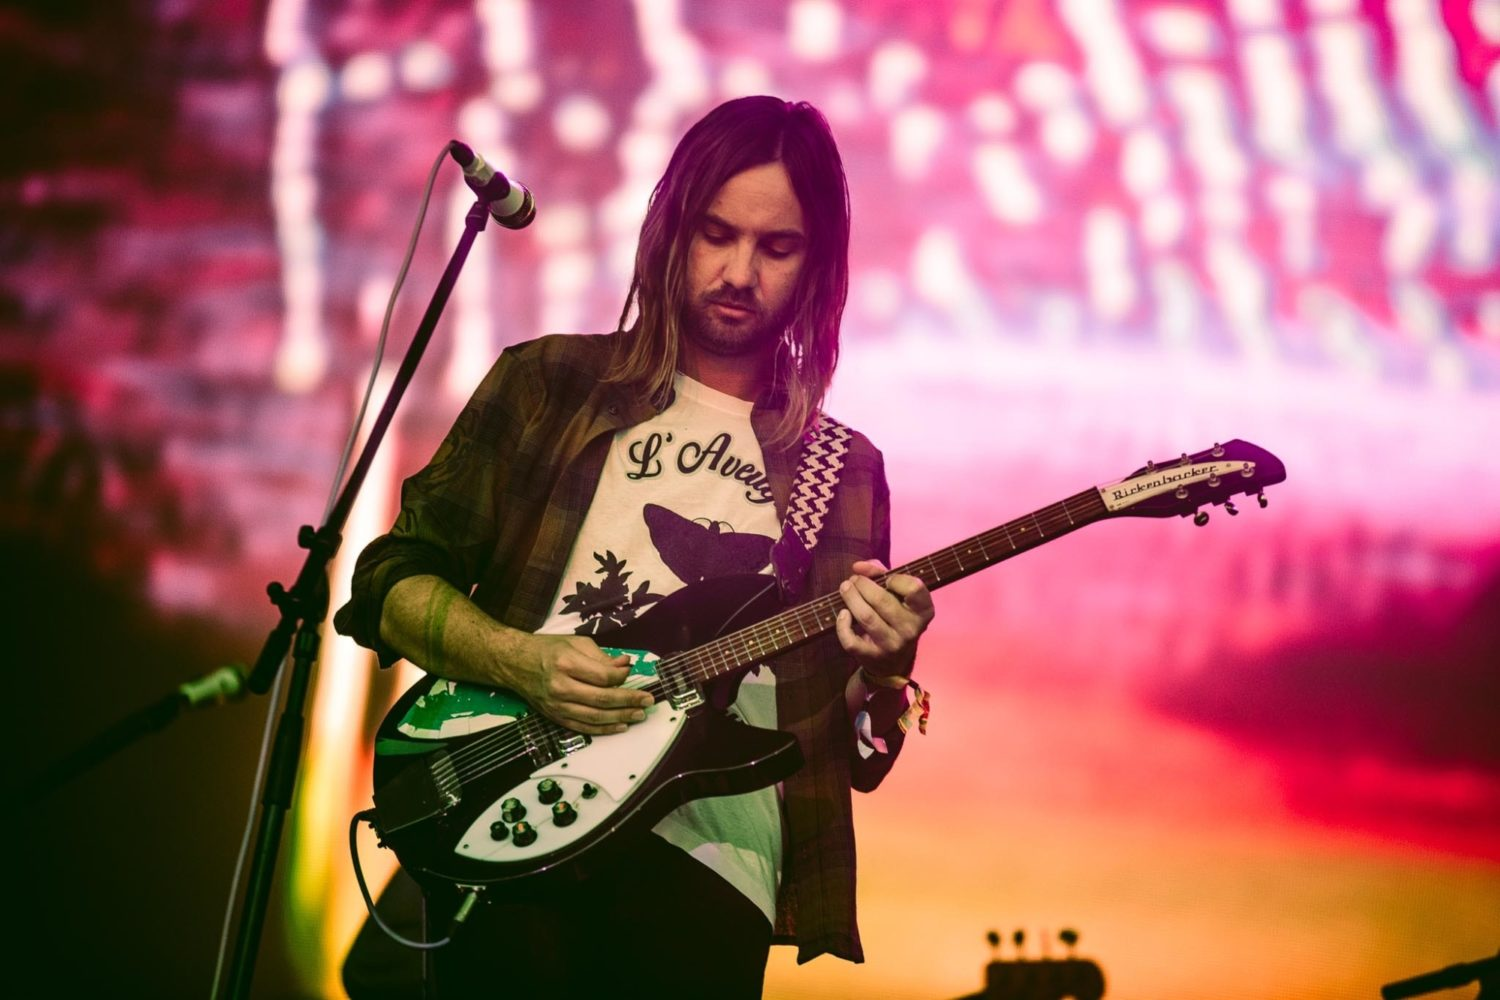 Tame Impala and Theophilus London share new music as Theo Impala